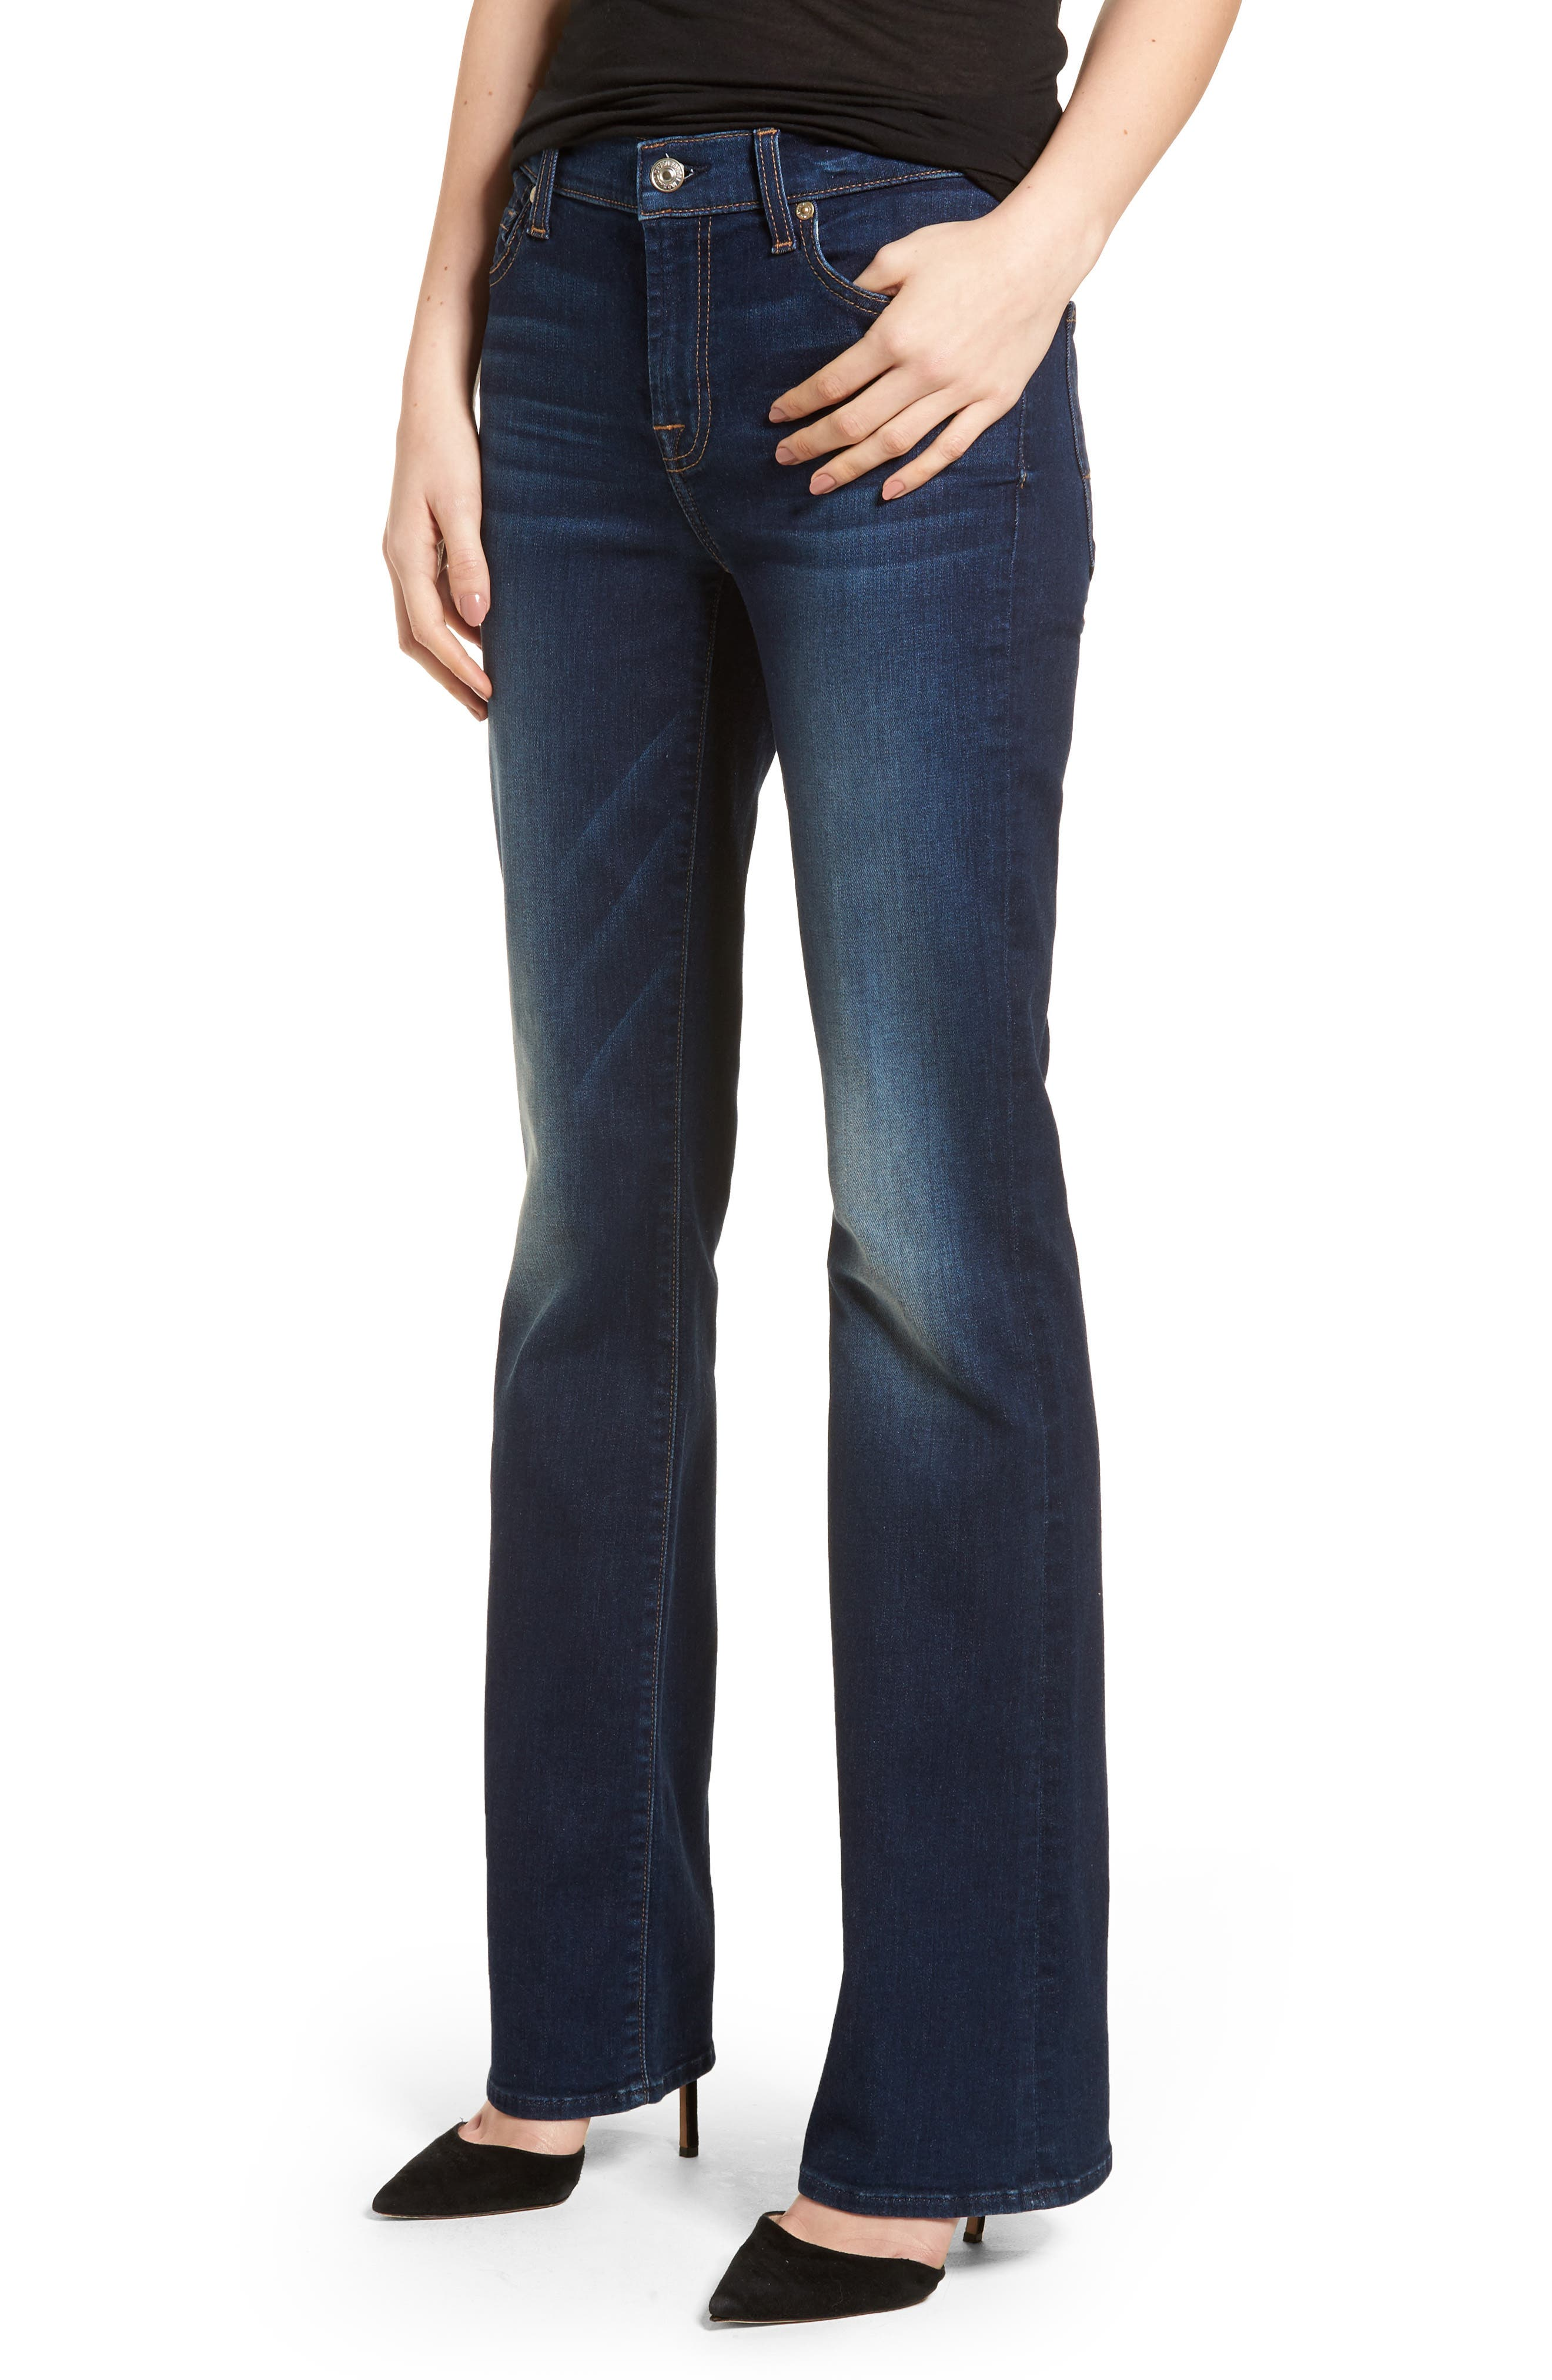 b(air) Tailorless Iconic Bootcut Jeans,                             Main thumbnail 1, color,                             MORENO